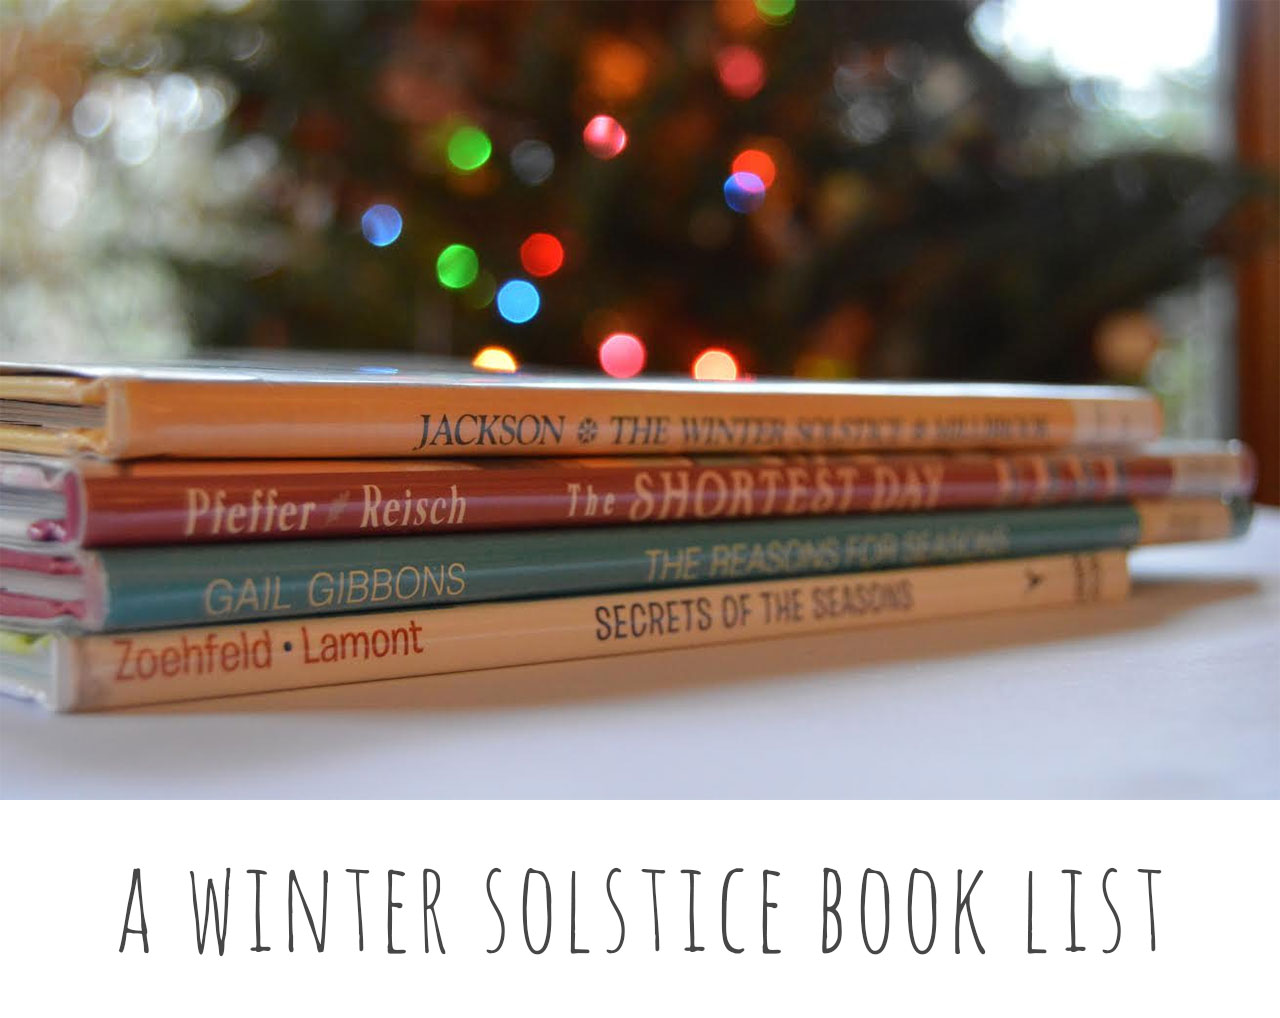 A Winter Solstice Book List